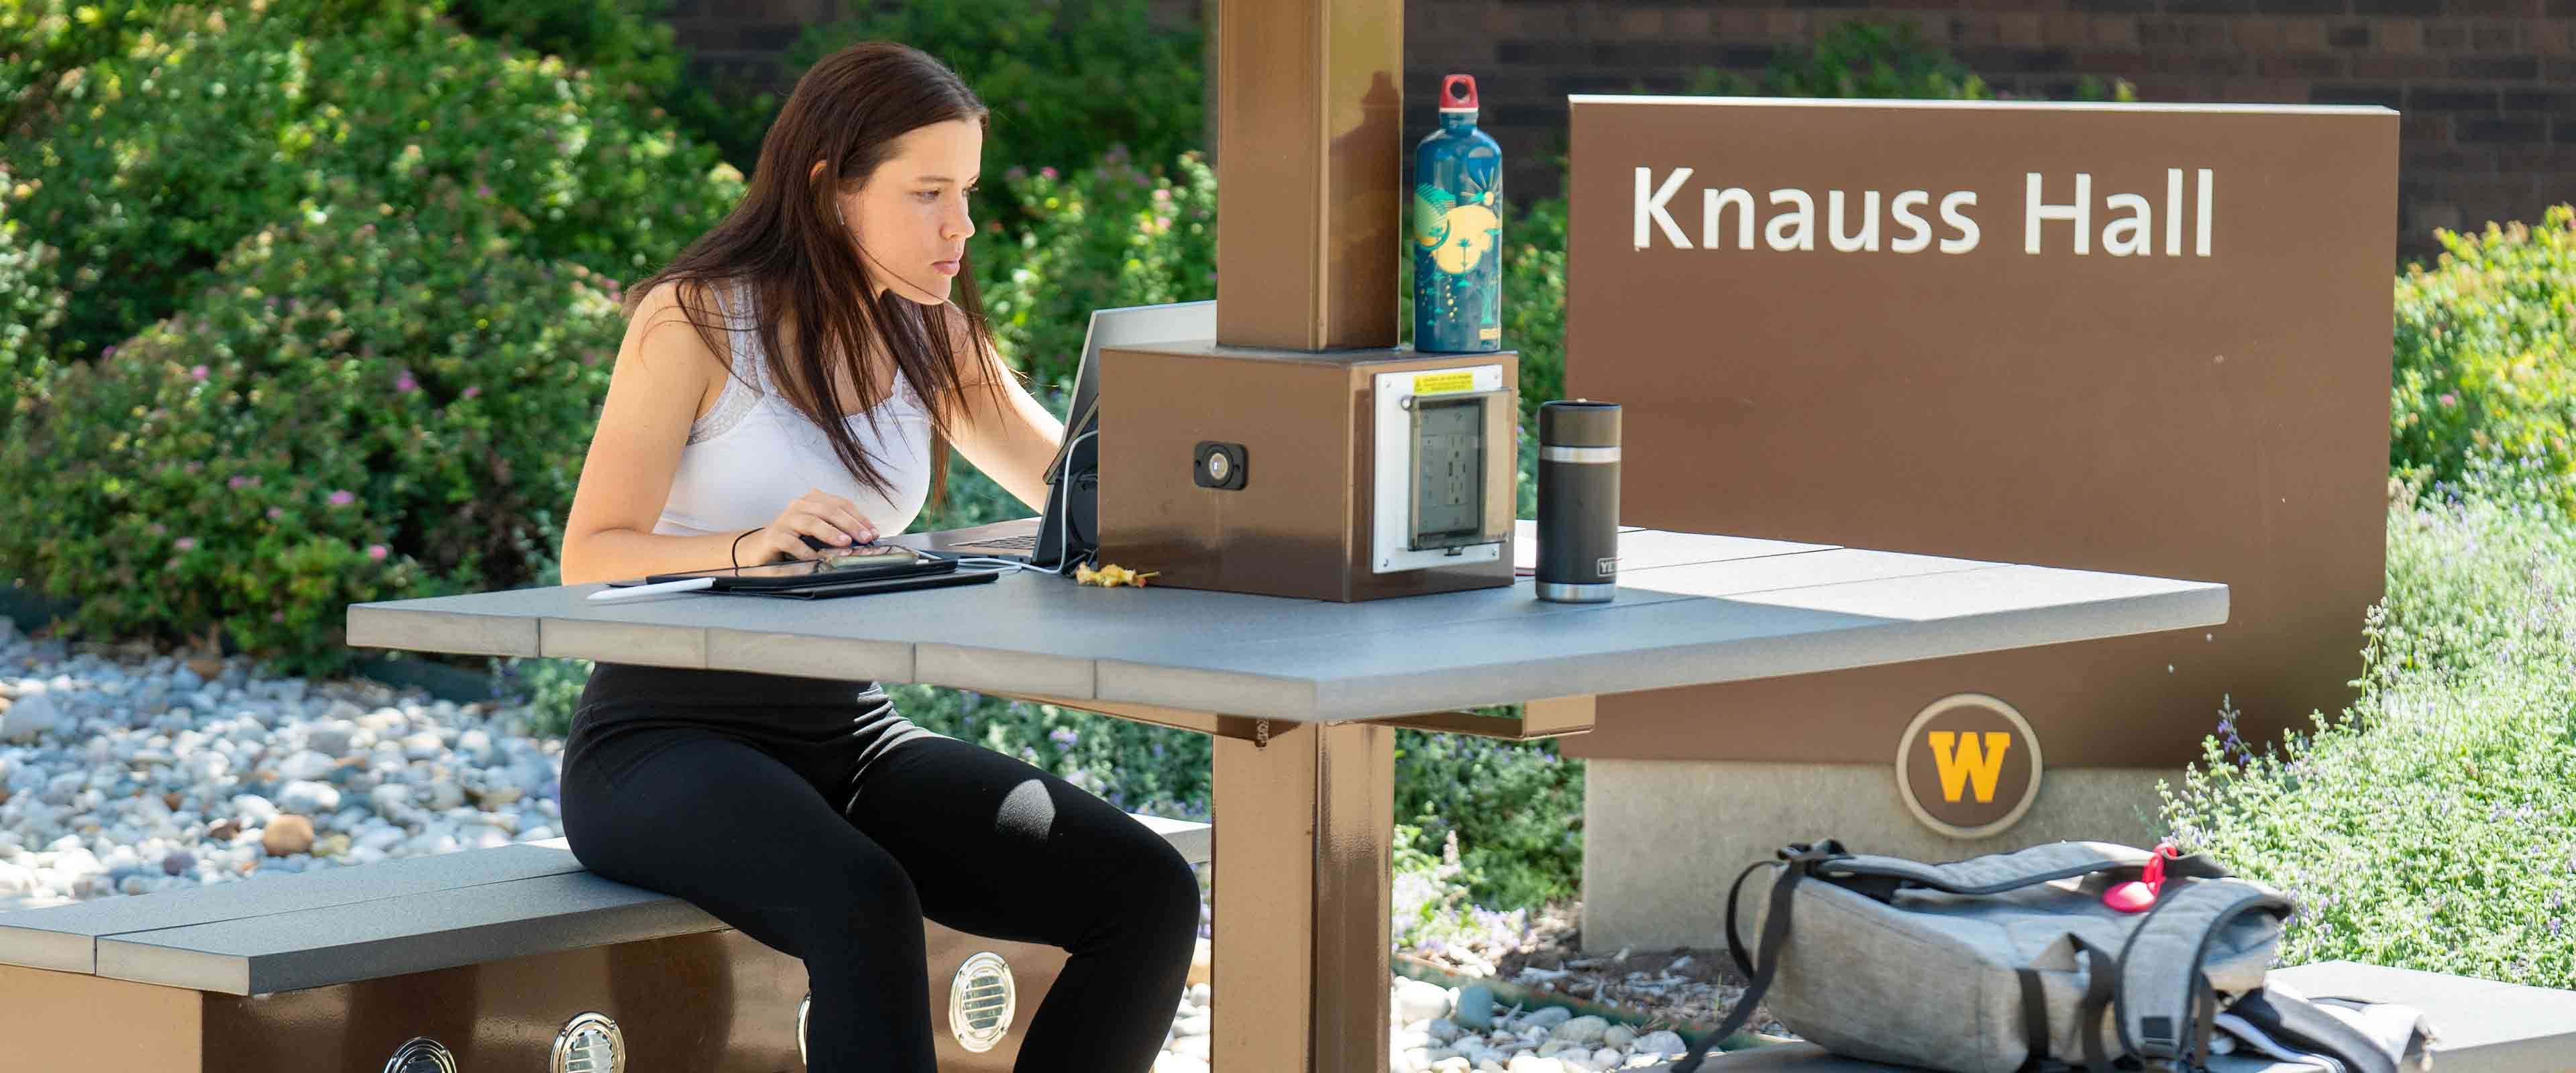 A student studying at a table outside Knauss Hall.